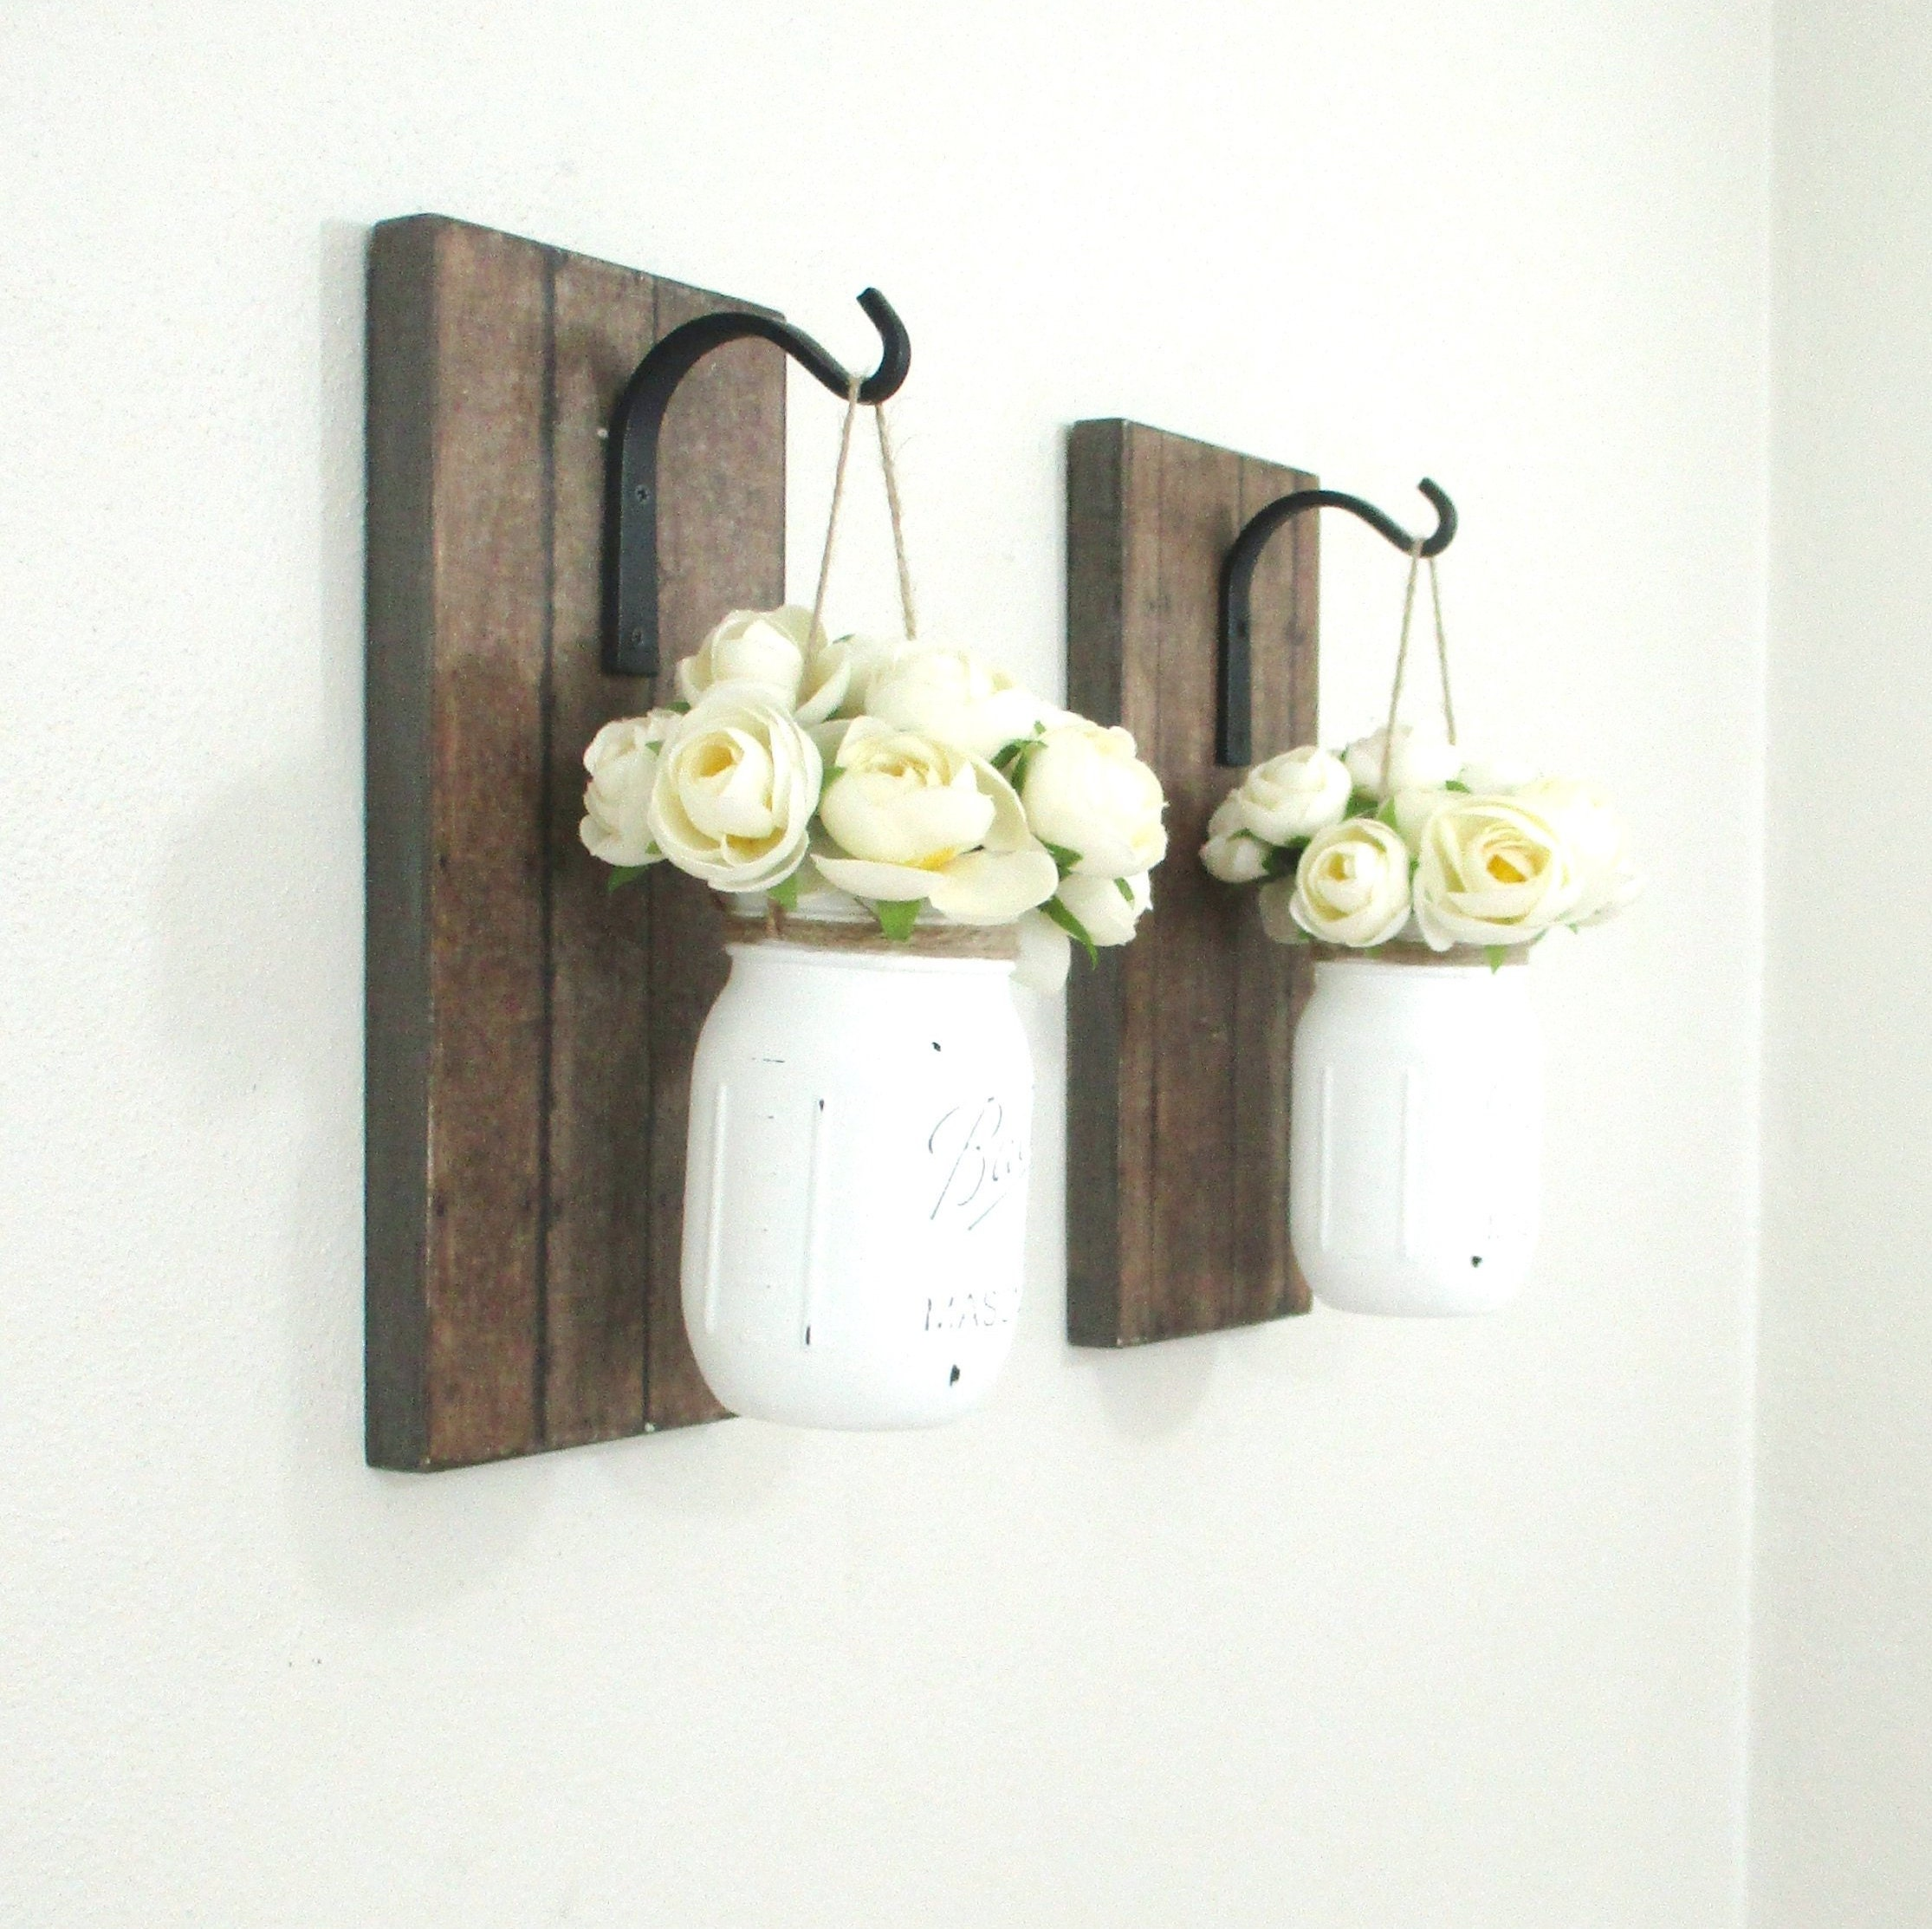 Skyrim Wall Sconces Not Working: Set Of 2 Hanging Mason Jar Sconce.. Wood Wall Decor